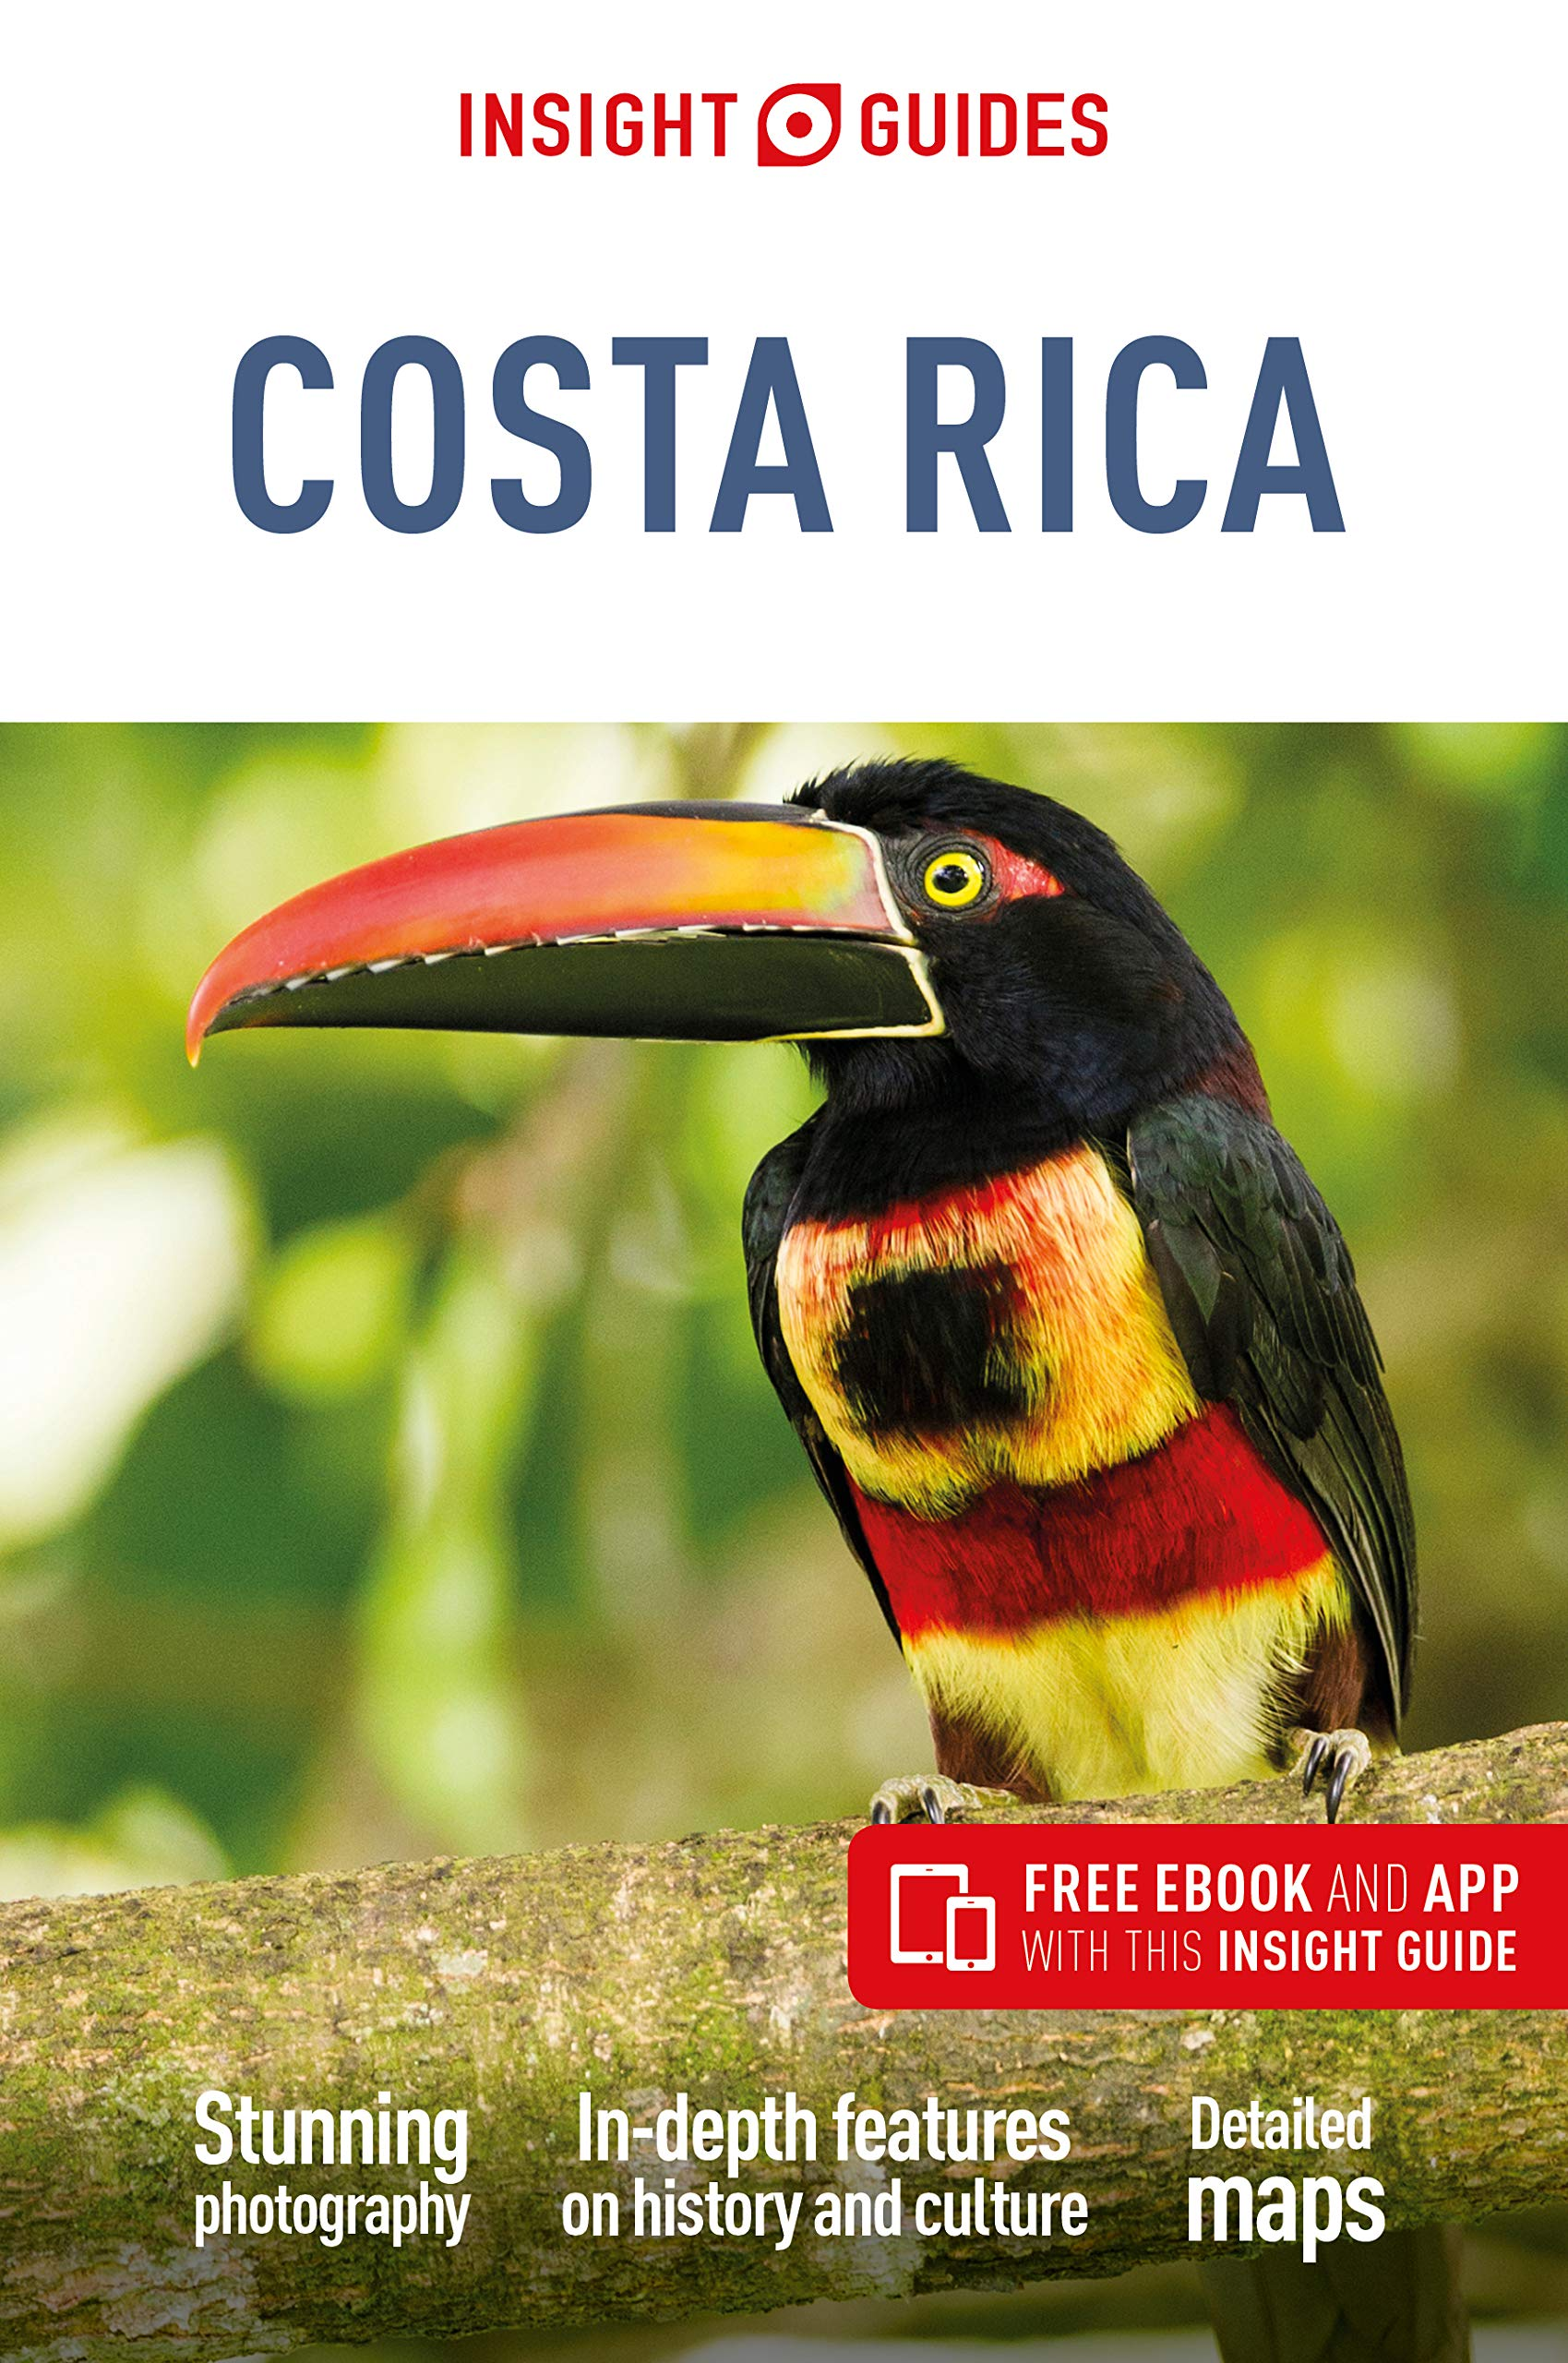 Insight Guides Costa Rica Travel Guide With Free Ebook Guides Insight 9781789190939 Amazon Com Books